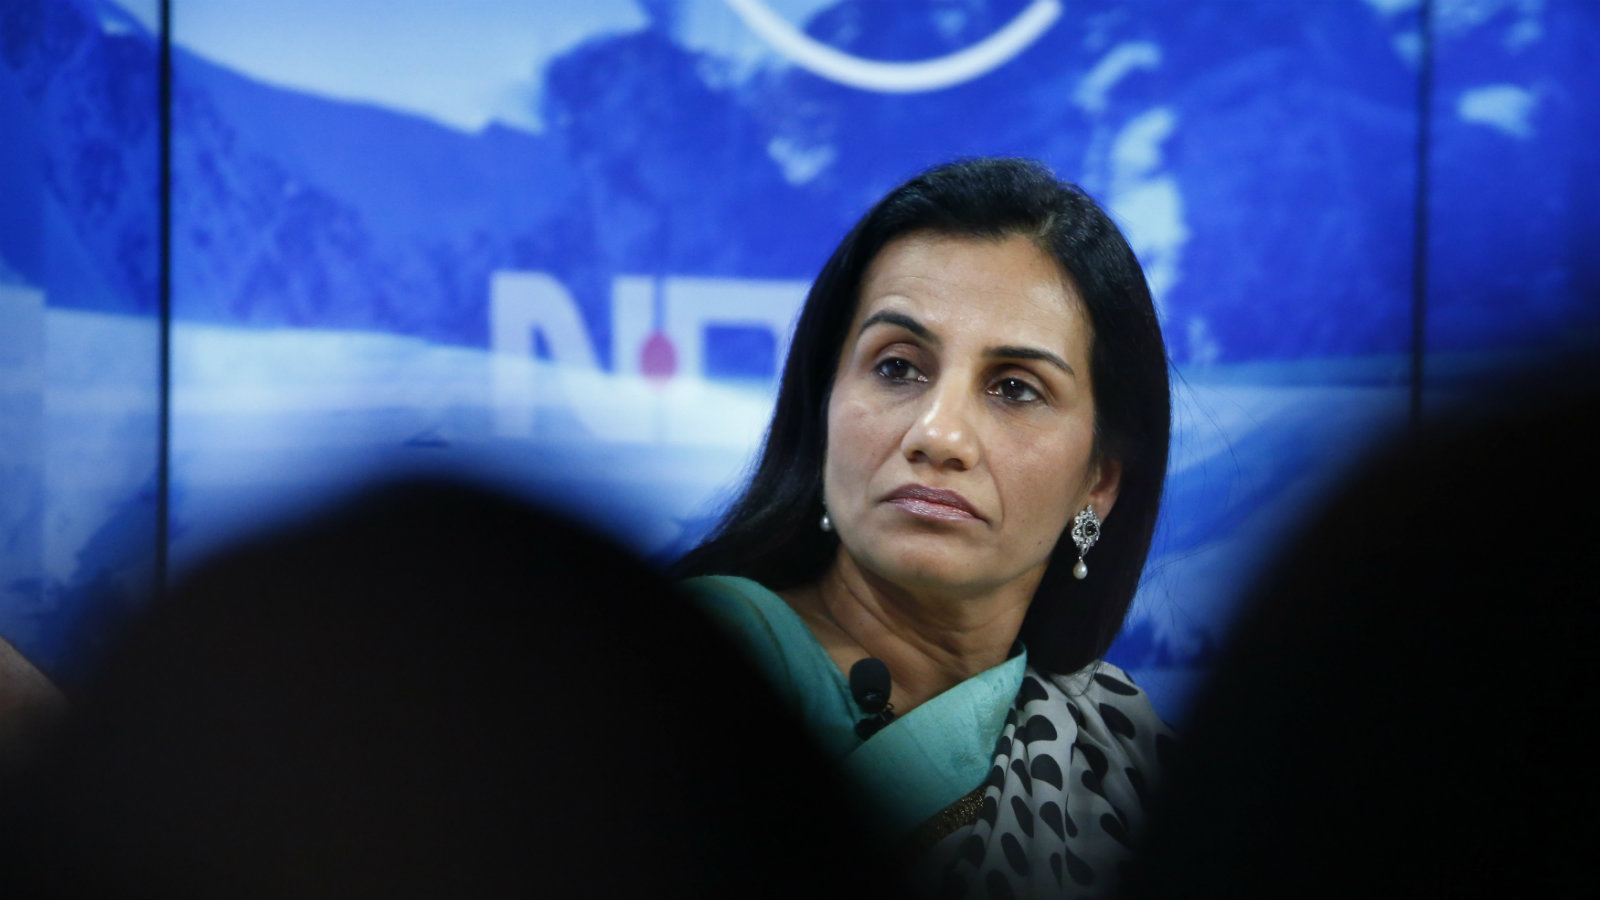 Chanda Kochhar, Managing Director and Chief Executive Officer of ICICI Bank listens during the session 'India's Next Decade' in the Swiss mountain resort of Davos January 23, 2015. More than 1,500 business leaders and 40 heads of state or government attend the Jan. 21-24 meeting of the World Economic Forum (WEF) to network and discuss big themes, from the price of oil to the future of the Internet. This year they are meeting in the midst of upheaval, with security forces on heightened alert after attacks in Paris, the European Central Bank considering a radical government bond-buying programme and the safe-haven Swiss franc rocketing.